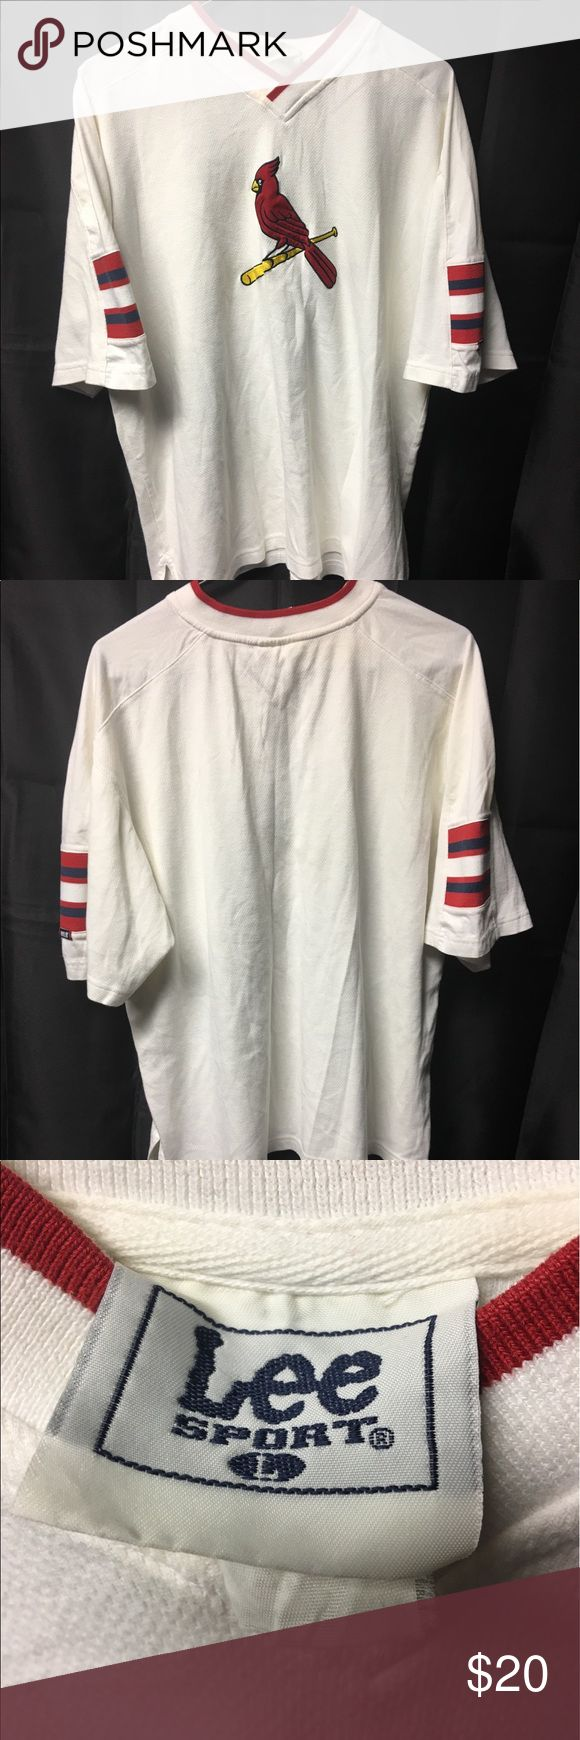 Vintage St. Louis Cardinal V Neck Teeshirt Gently Worn Men's Large St. Louis Cardinals V Neck Teeshirt. Shirt features Cardinals Logo sewn in on the chest. In excellent condition with no major flaws. Lee Shirts Tees - Short Sleeve